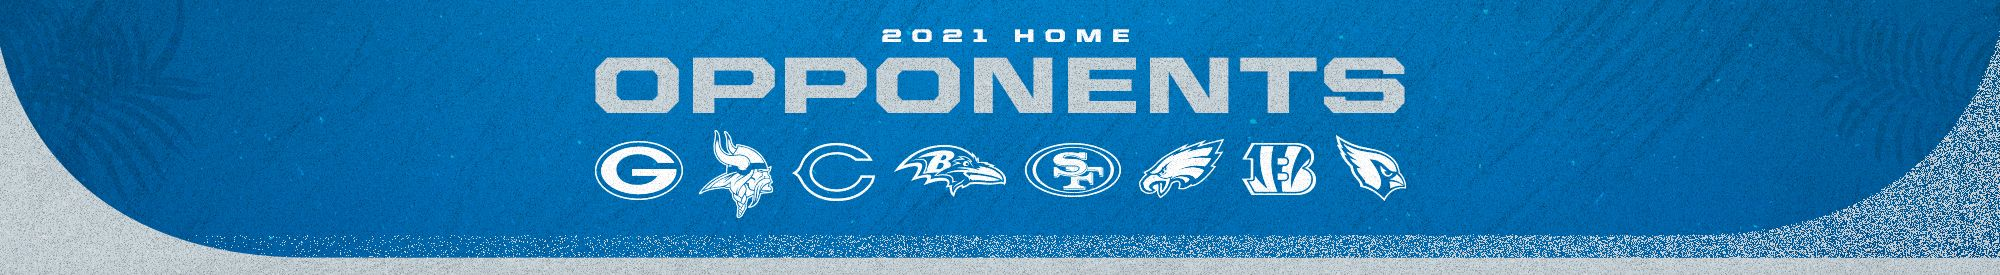 2021-home-opponents-homepage-banner